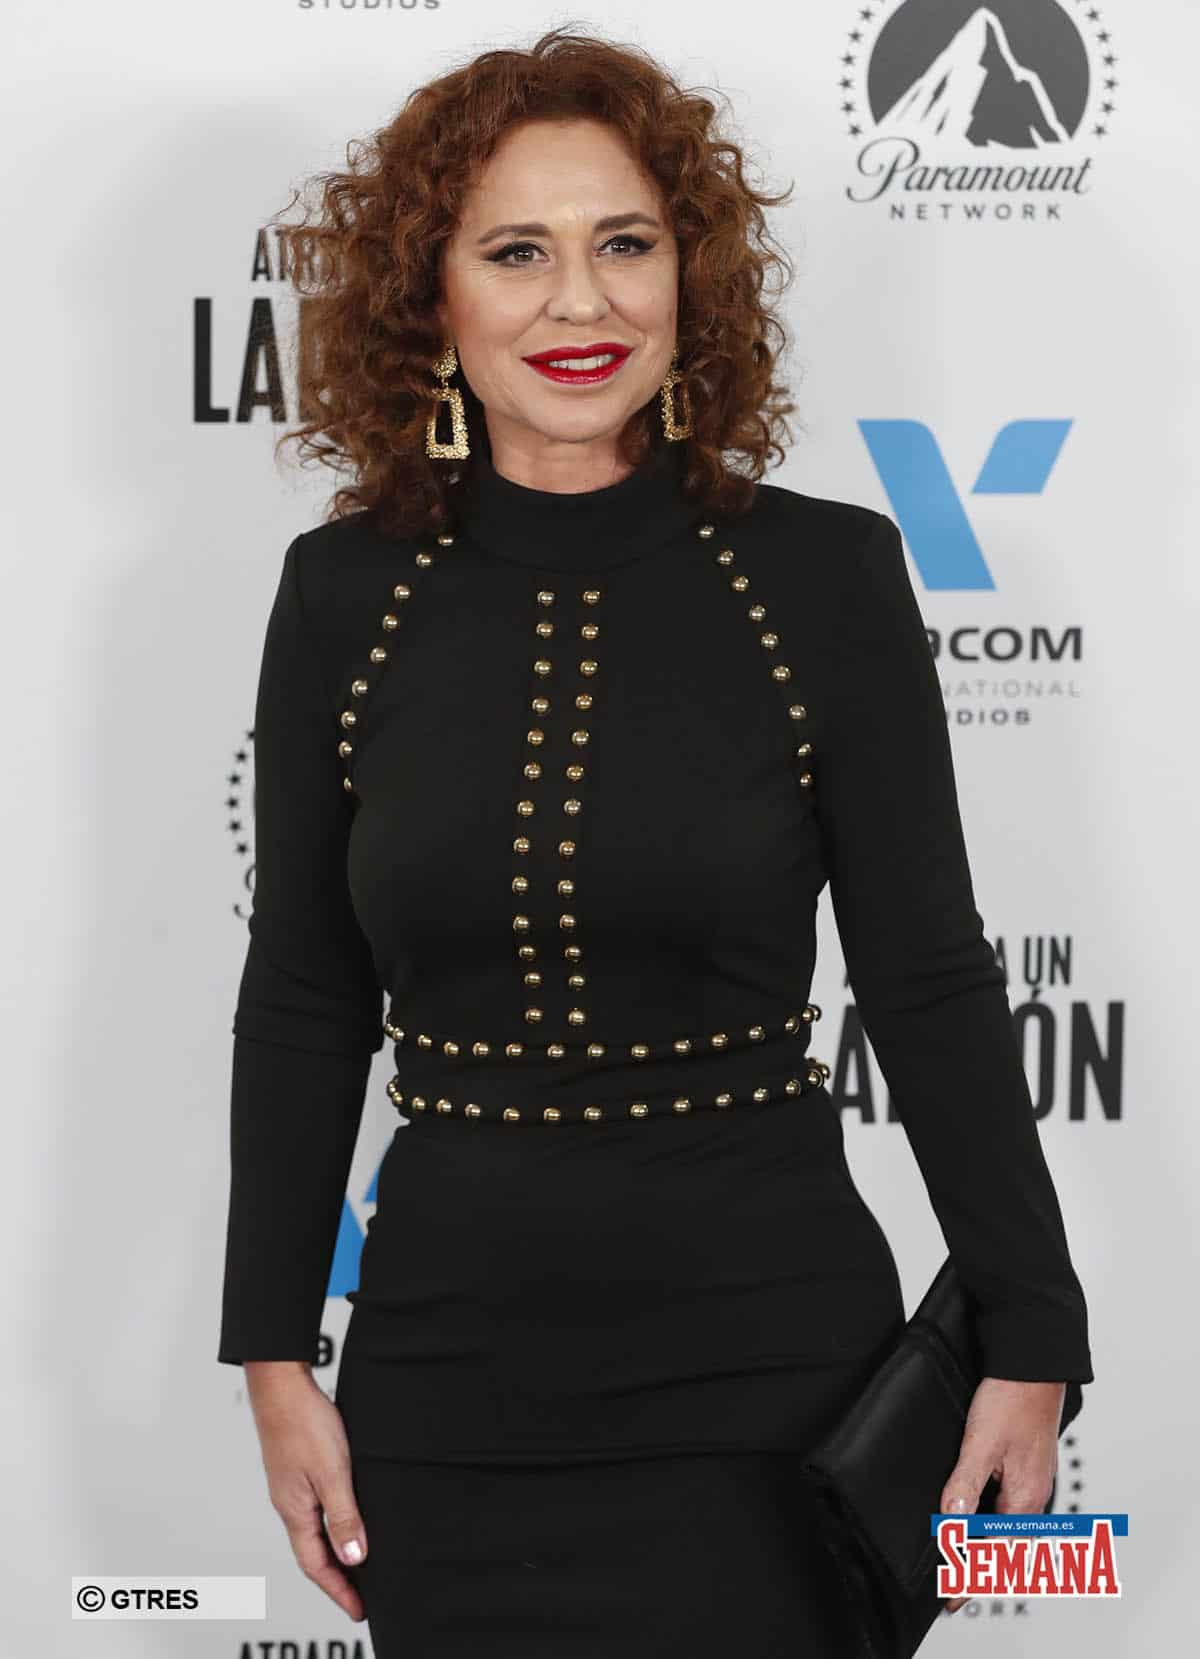 Singer Vicky Larraz during the «Atrapa un ladron» premiere, in Madrid, on Wednesday 06, November 2019